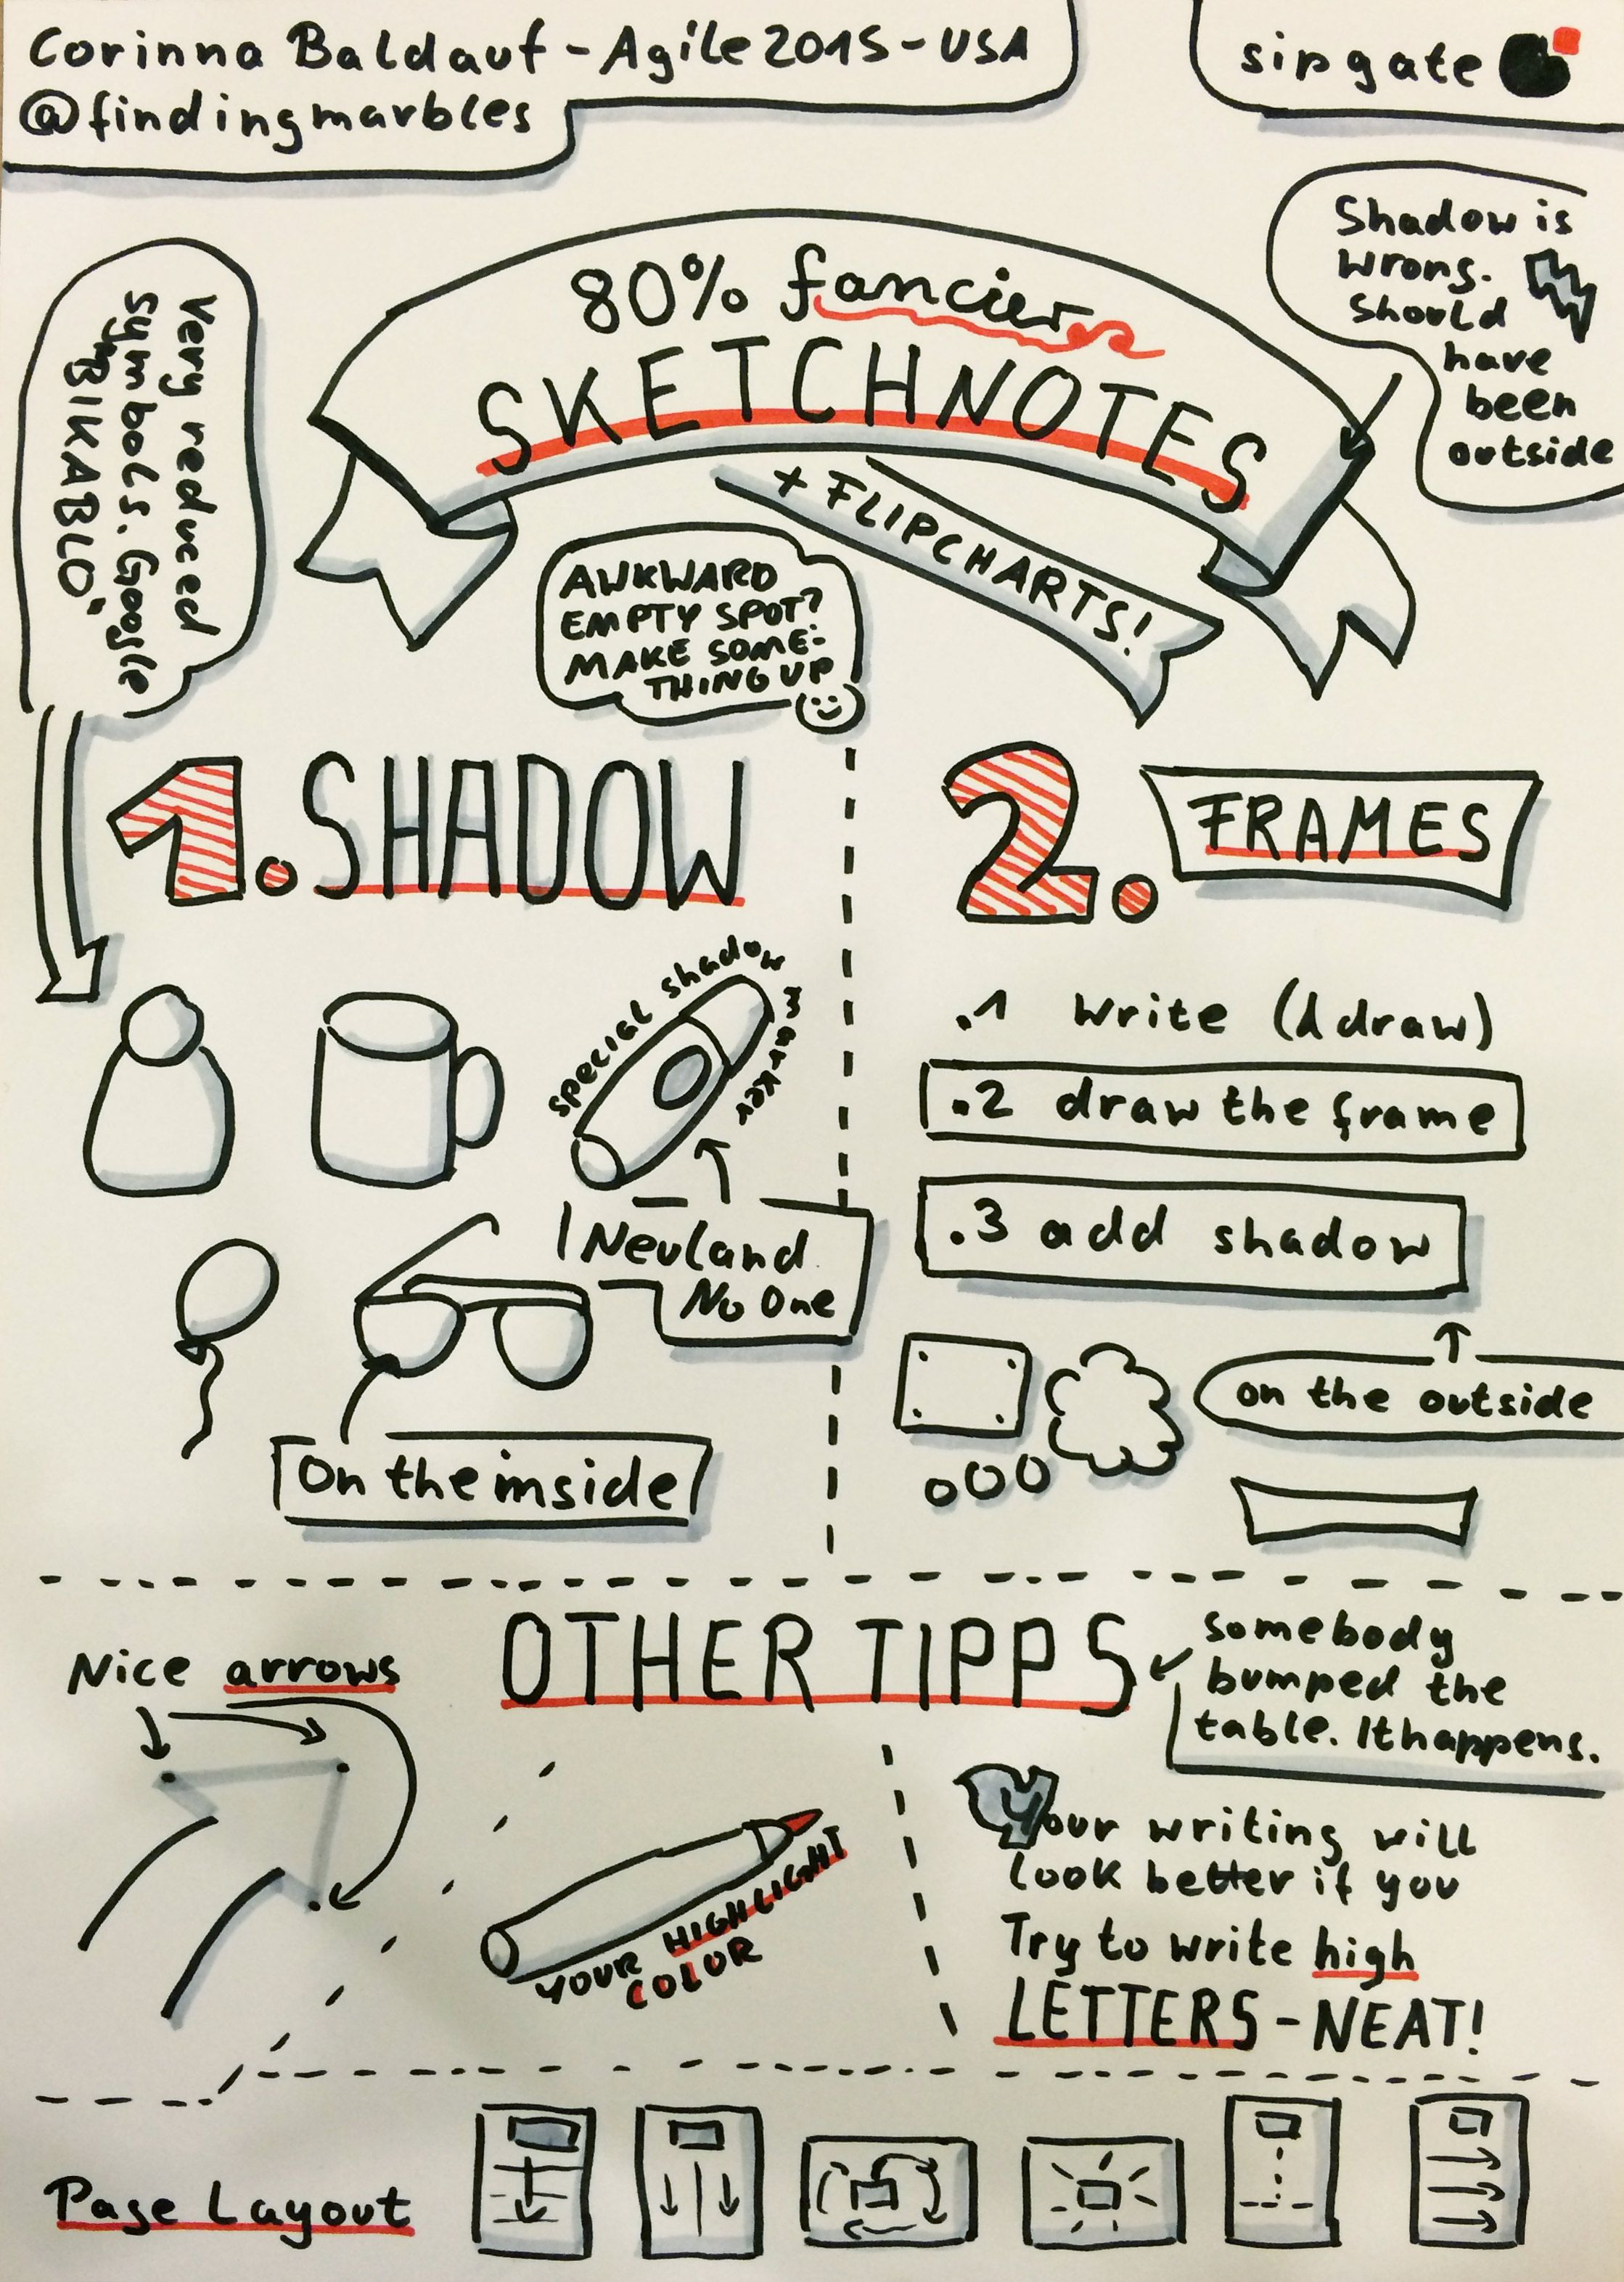 Here Some Great Tips From Corinna Baldauf Taking Notes